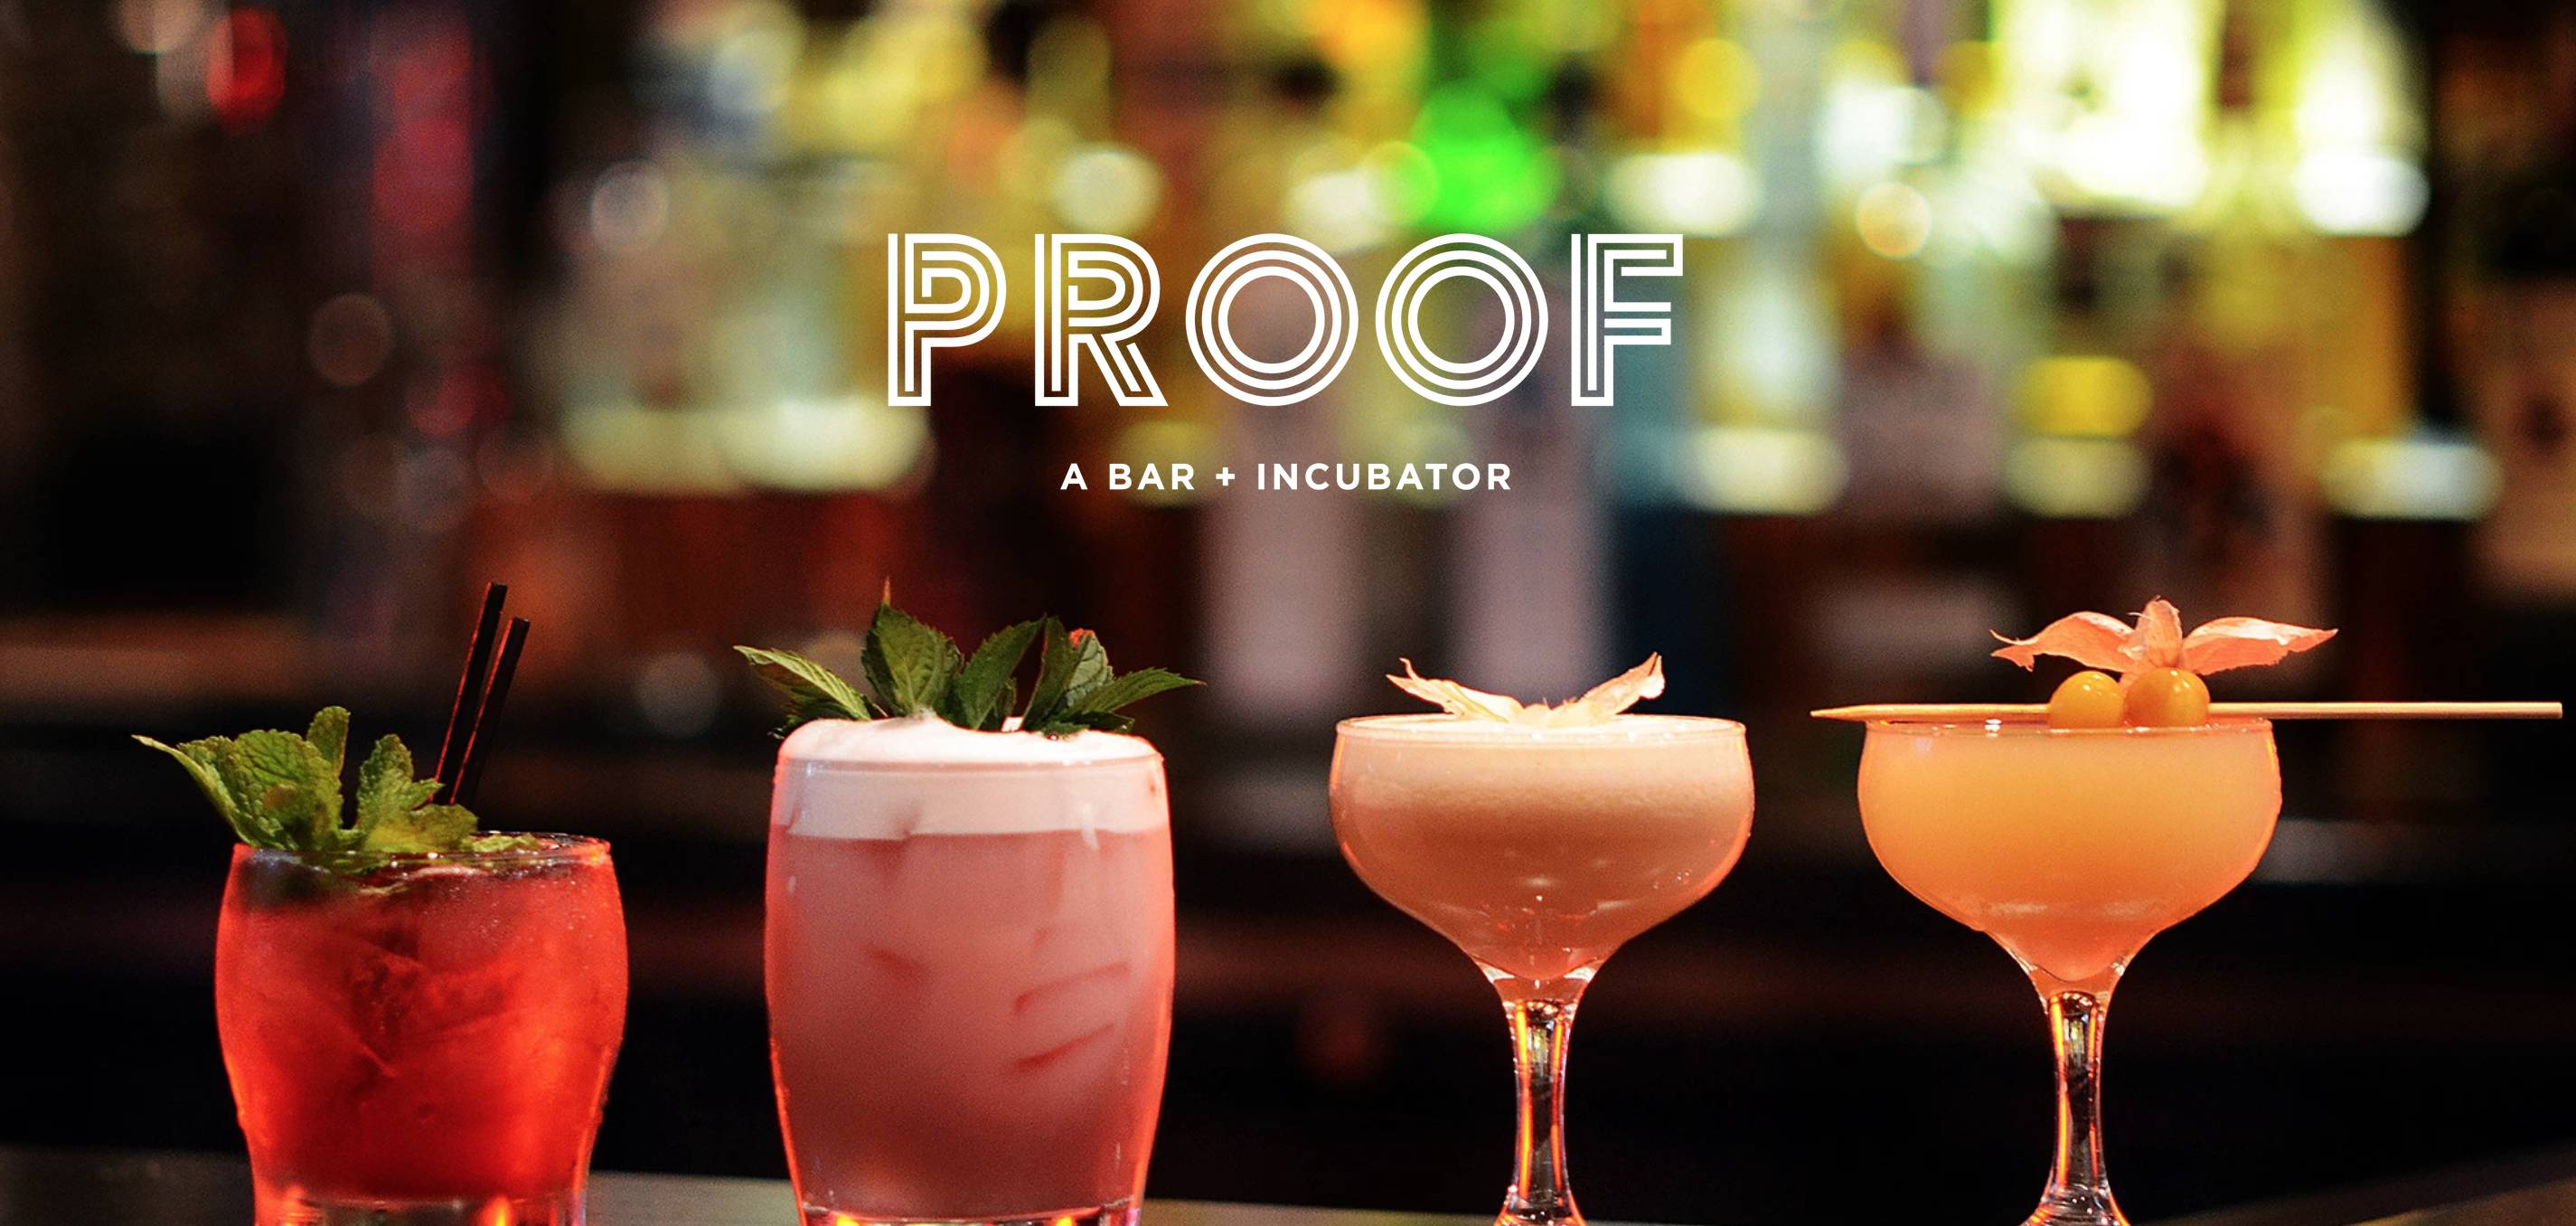 Proof Bar & Incubator